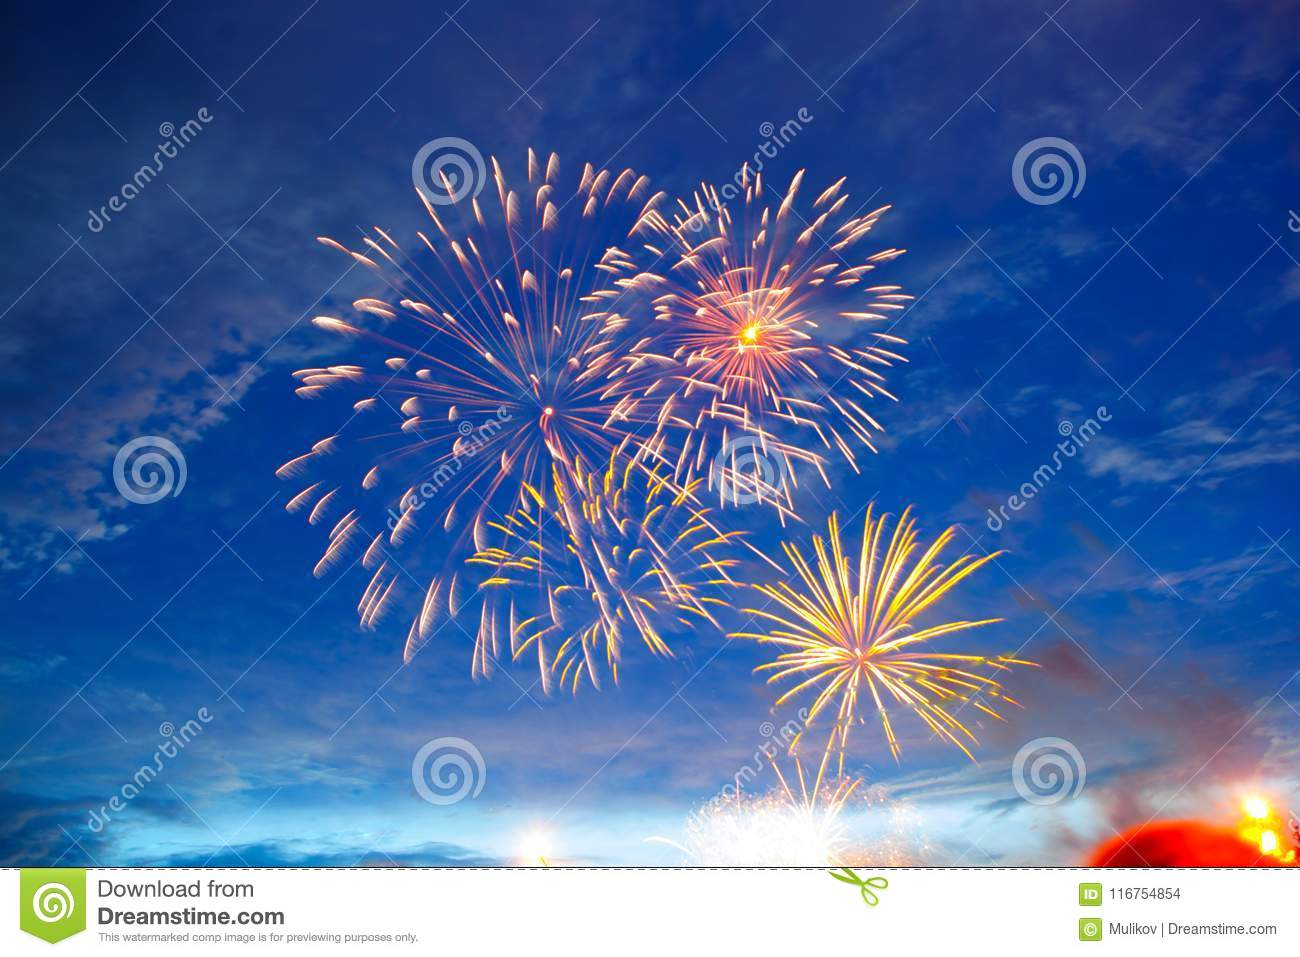 Fireworks in sky twilight. Fireworks display on dark sky background. Independence Day, 4th of July, Fourth of July or New Year